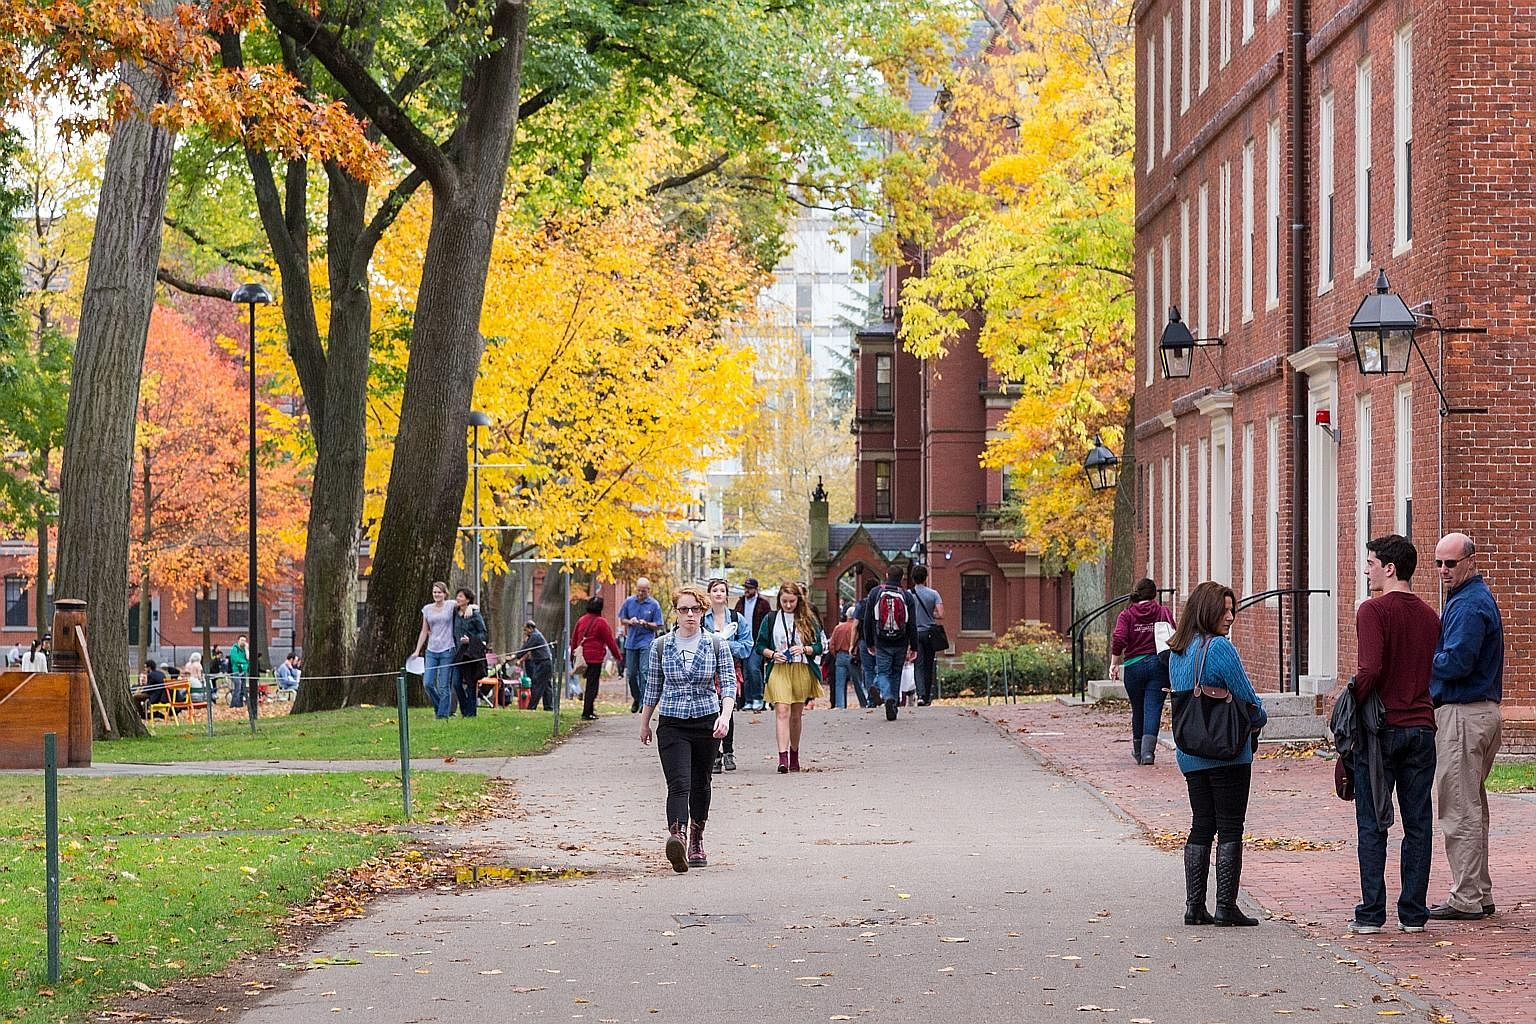 The US Justice Department plans to investigate a complaint by Asian-American organisations that Harvard University discriminates against them by giving an edge to other racial minorities.